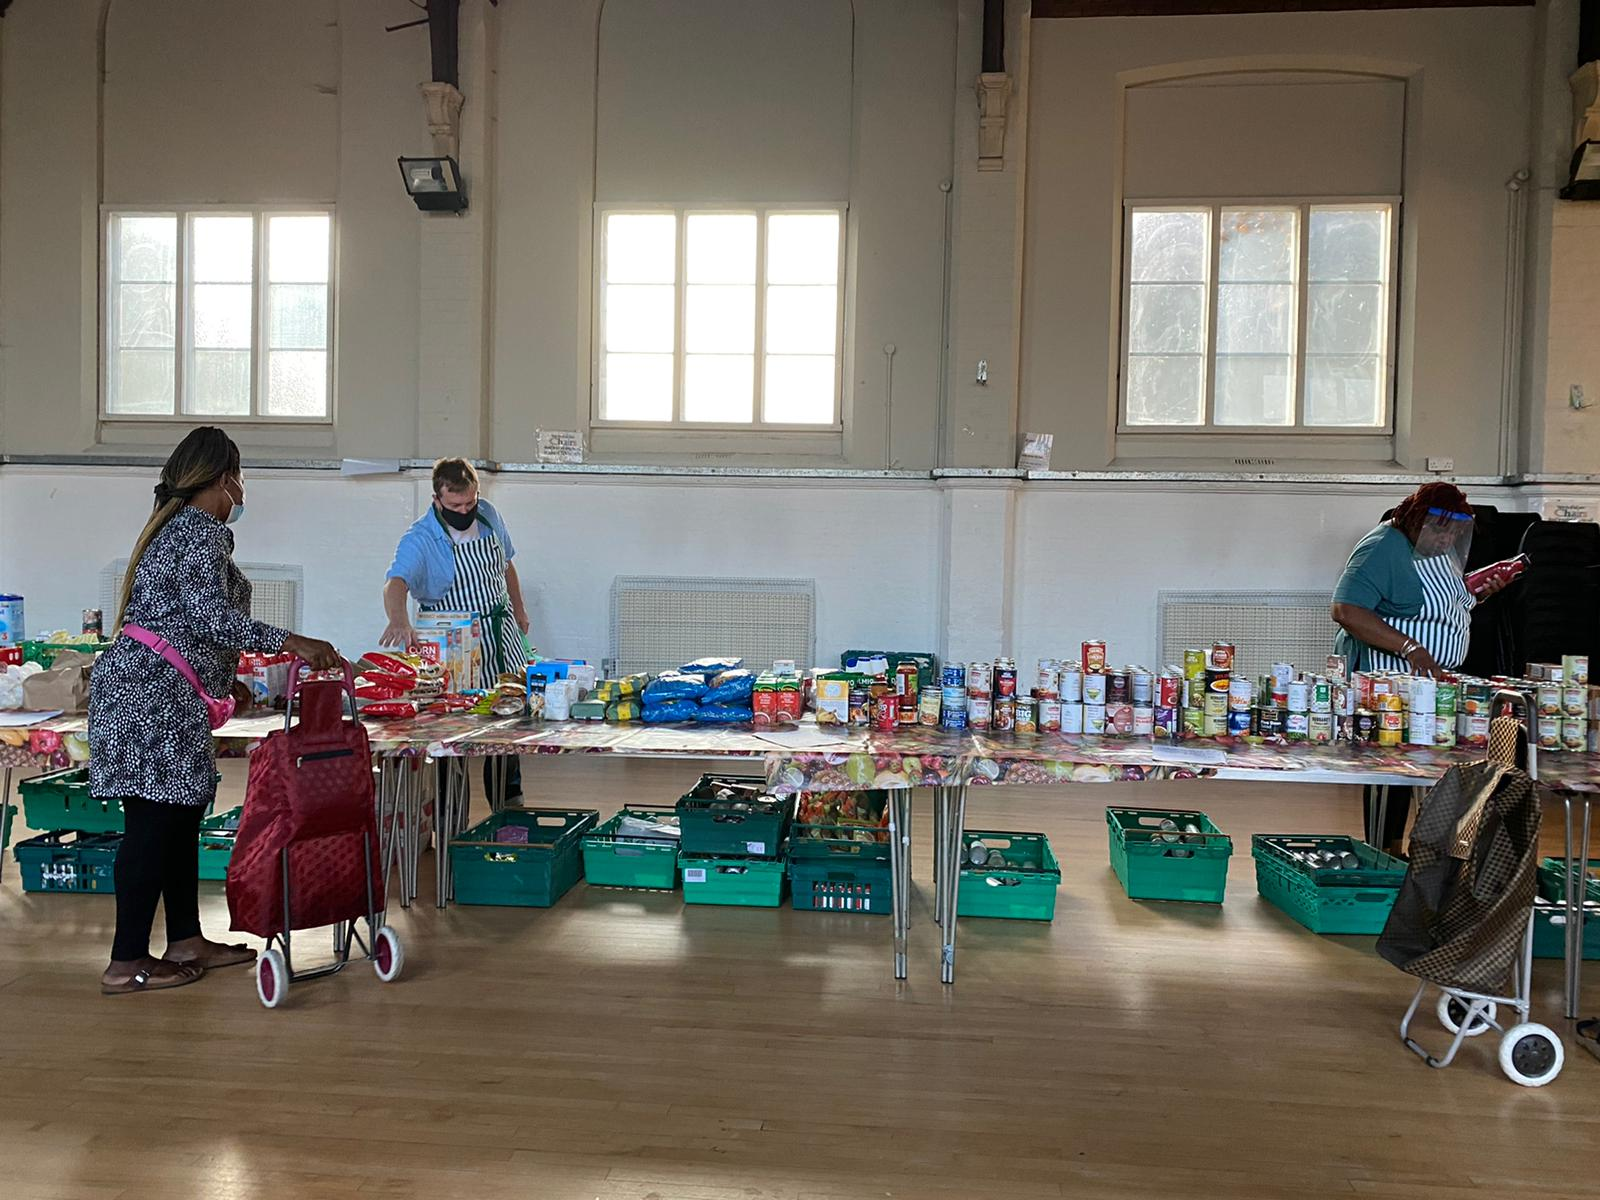 Fundraising for Bounds Green Food Bank  by Bowes Park Community Association fundraising photo 4